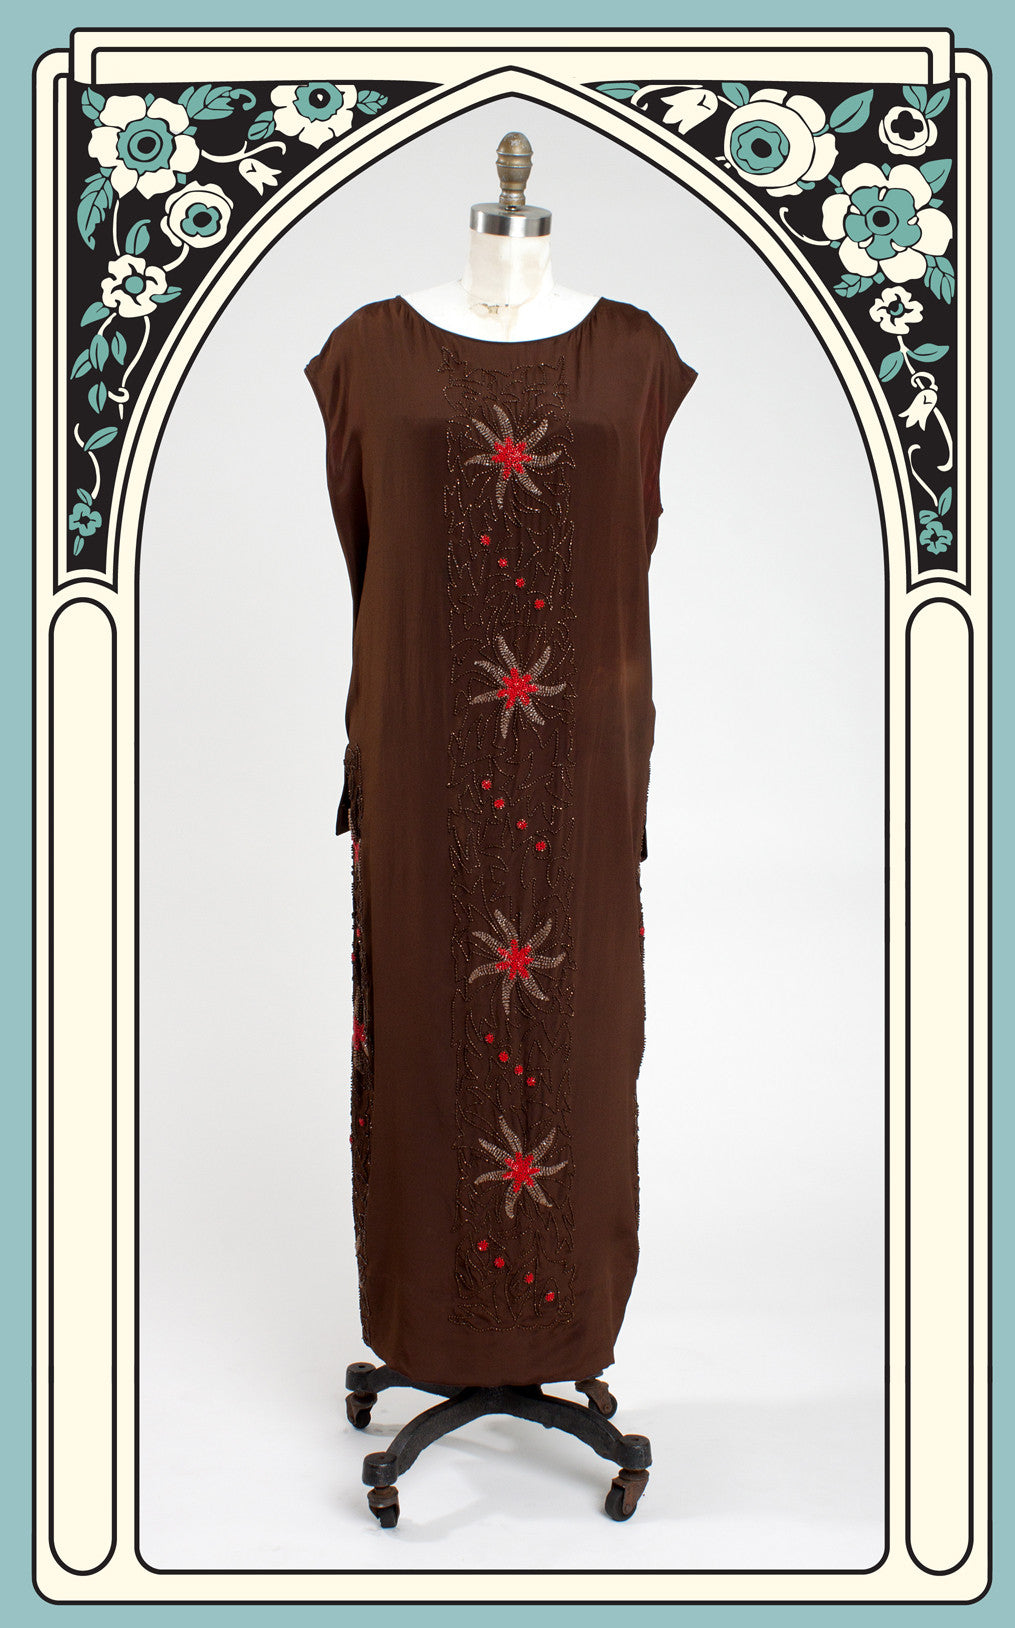 SOLD -- 1920s Heavily Beaded Silk Sheath Dress with Ruffled Bow Accent